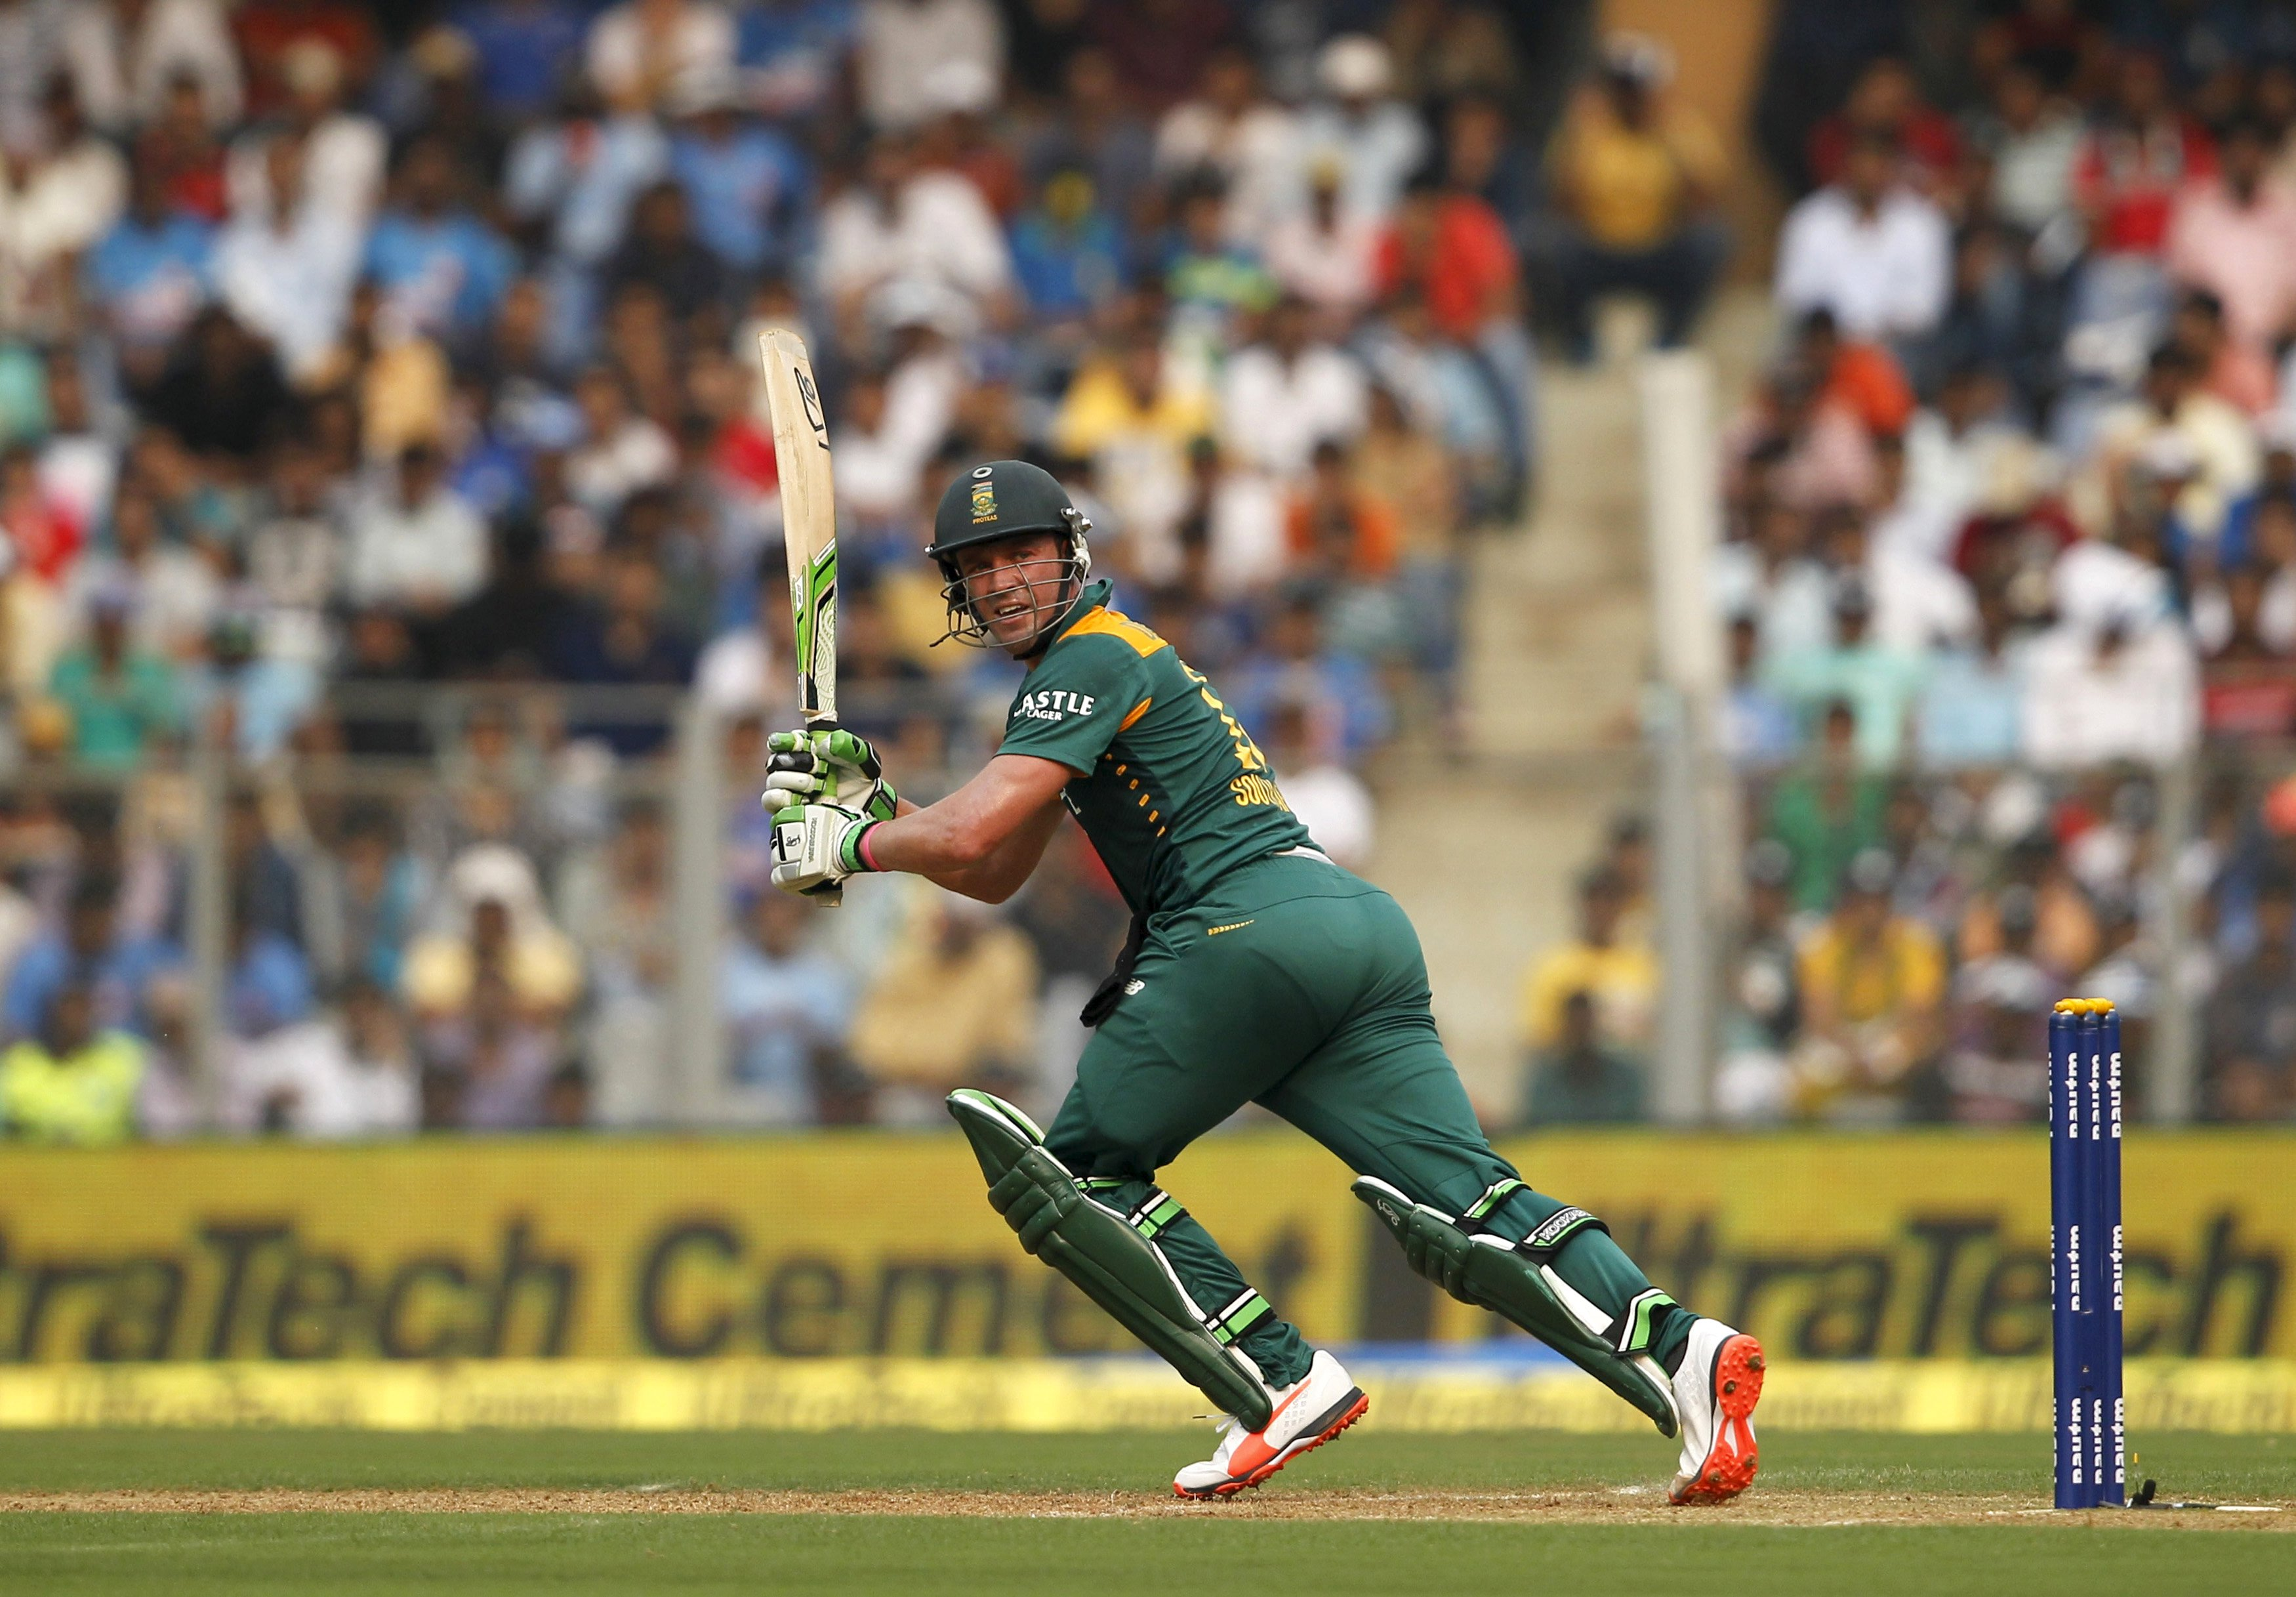 South Africa's captain AB de Villiers watches his shot during their fifth and final one-day international cricket match against India in Mumbai, India, October 25, 2015. Photo: Reuters